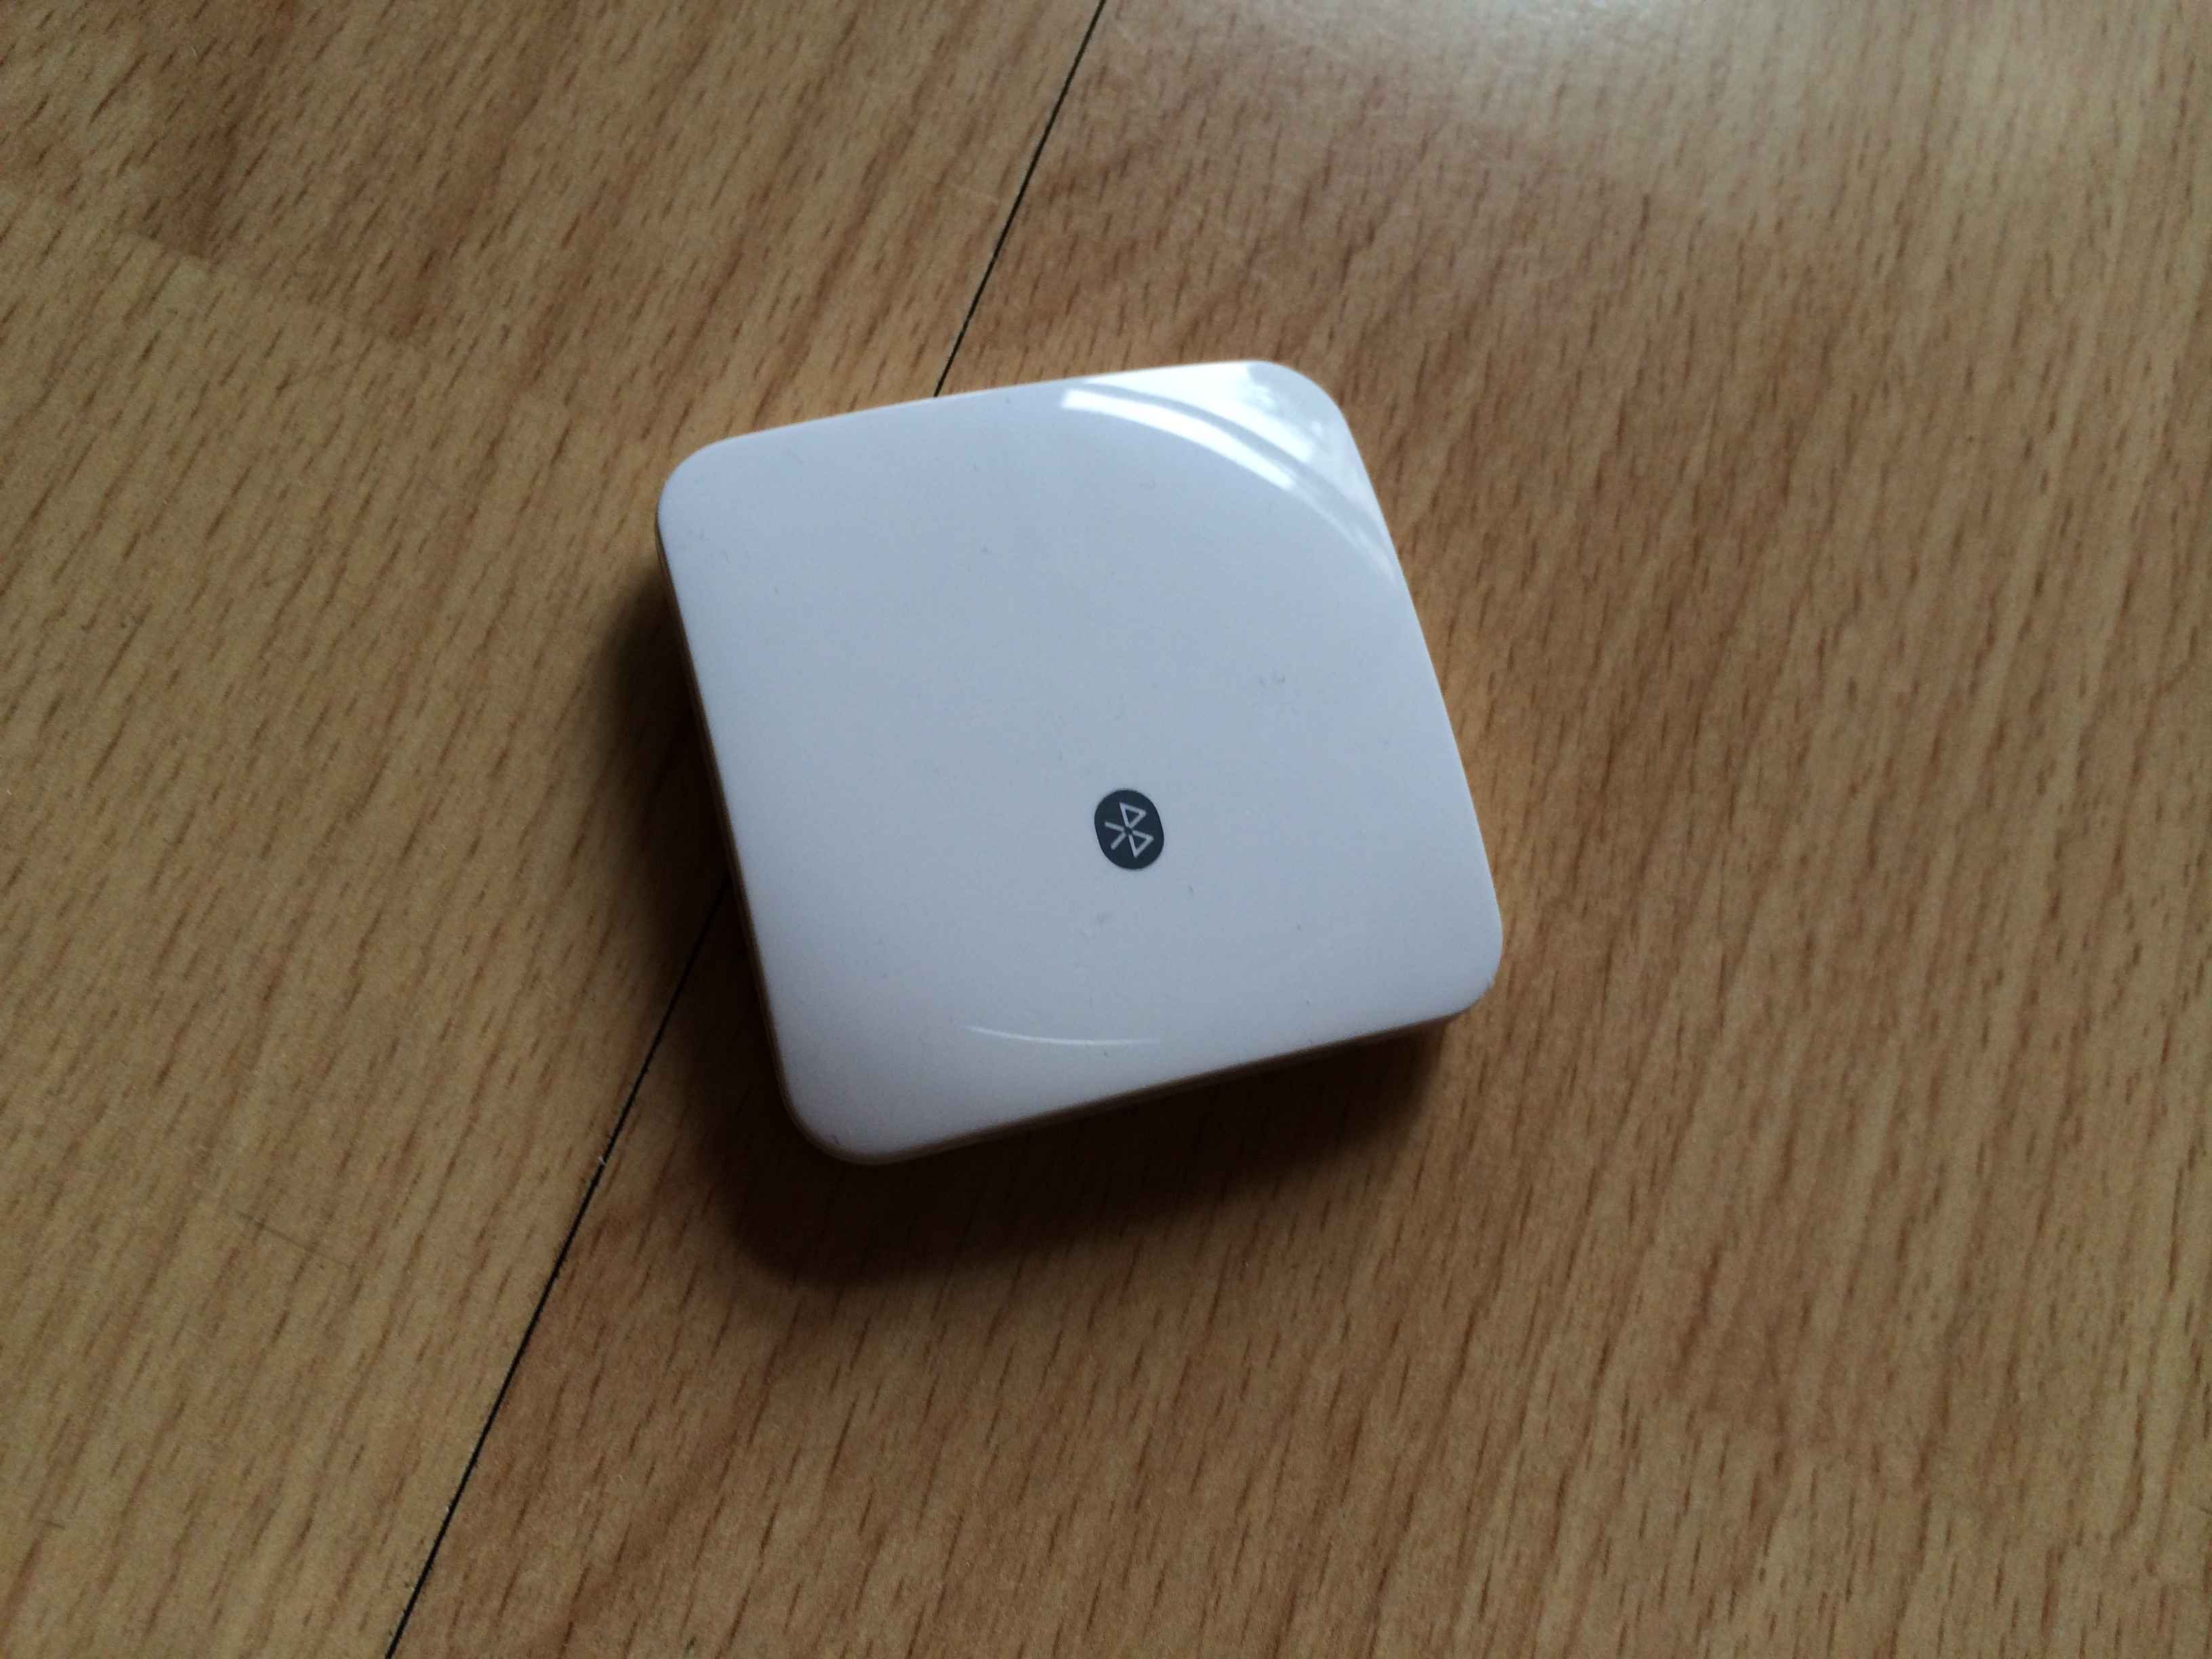 Im Test: InLine Bluetooth zu Apple Docking Konverter 5